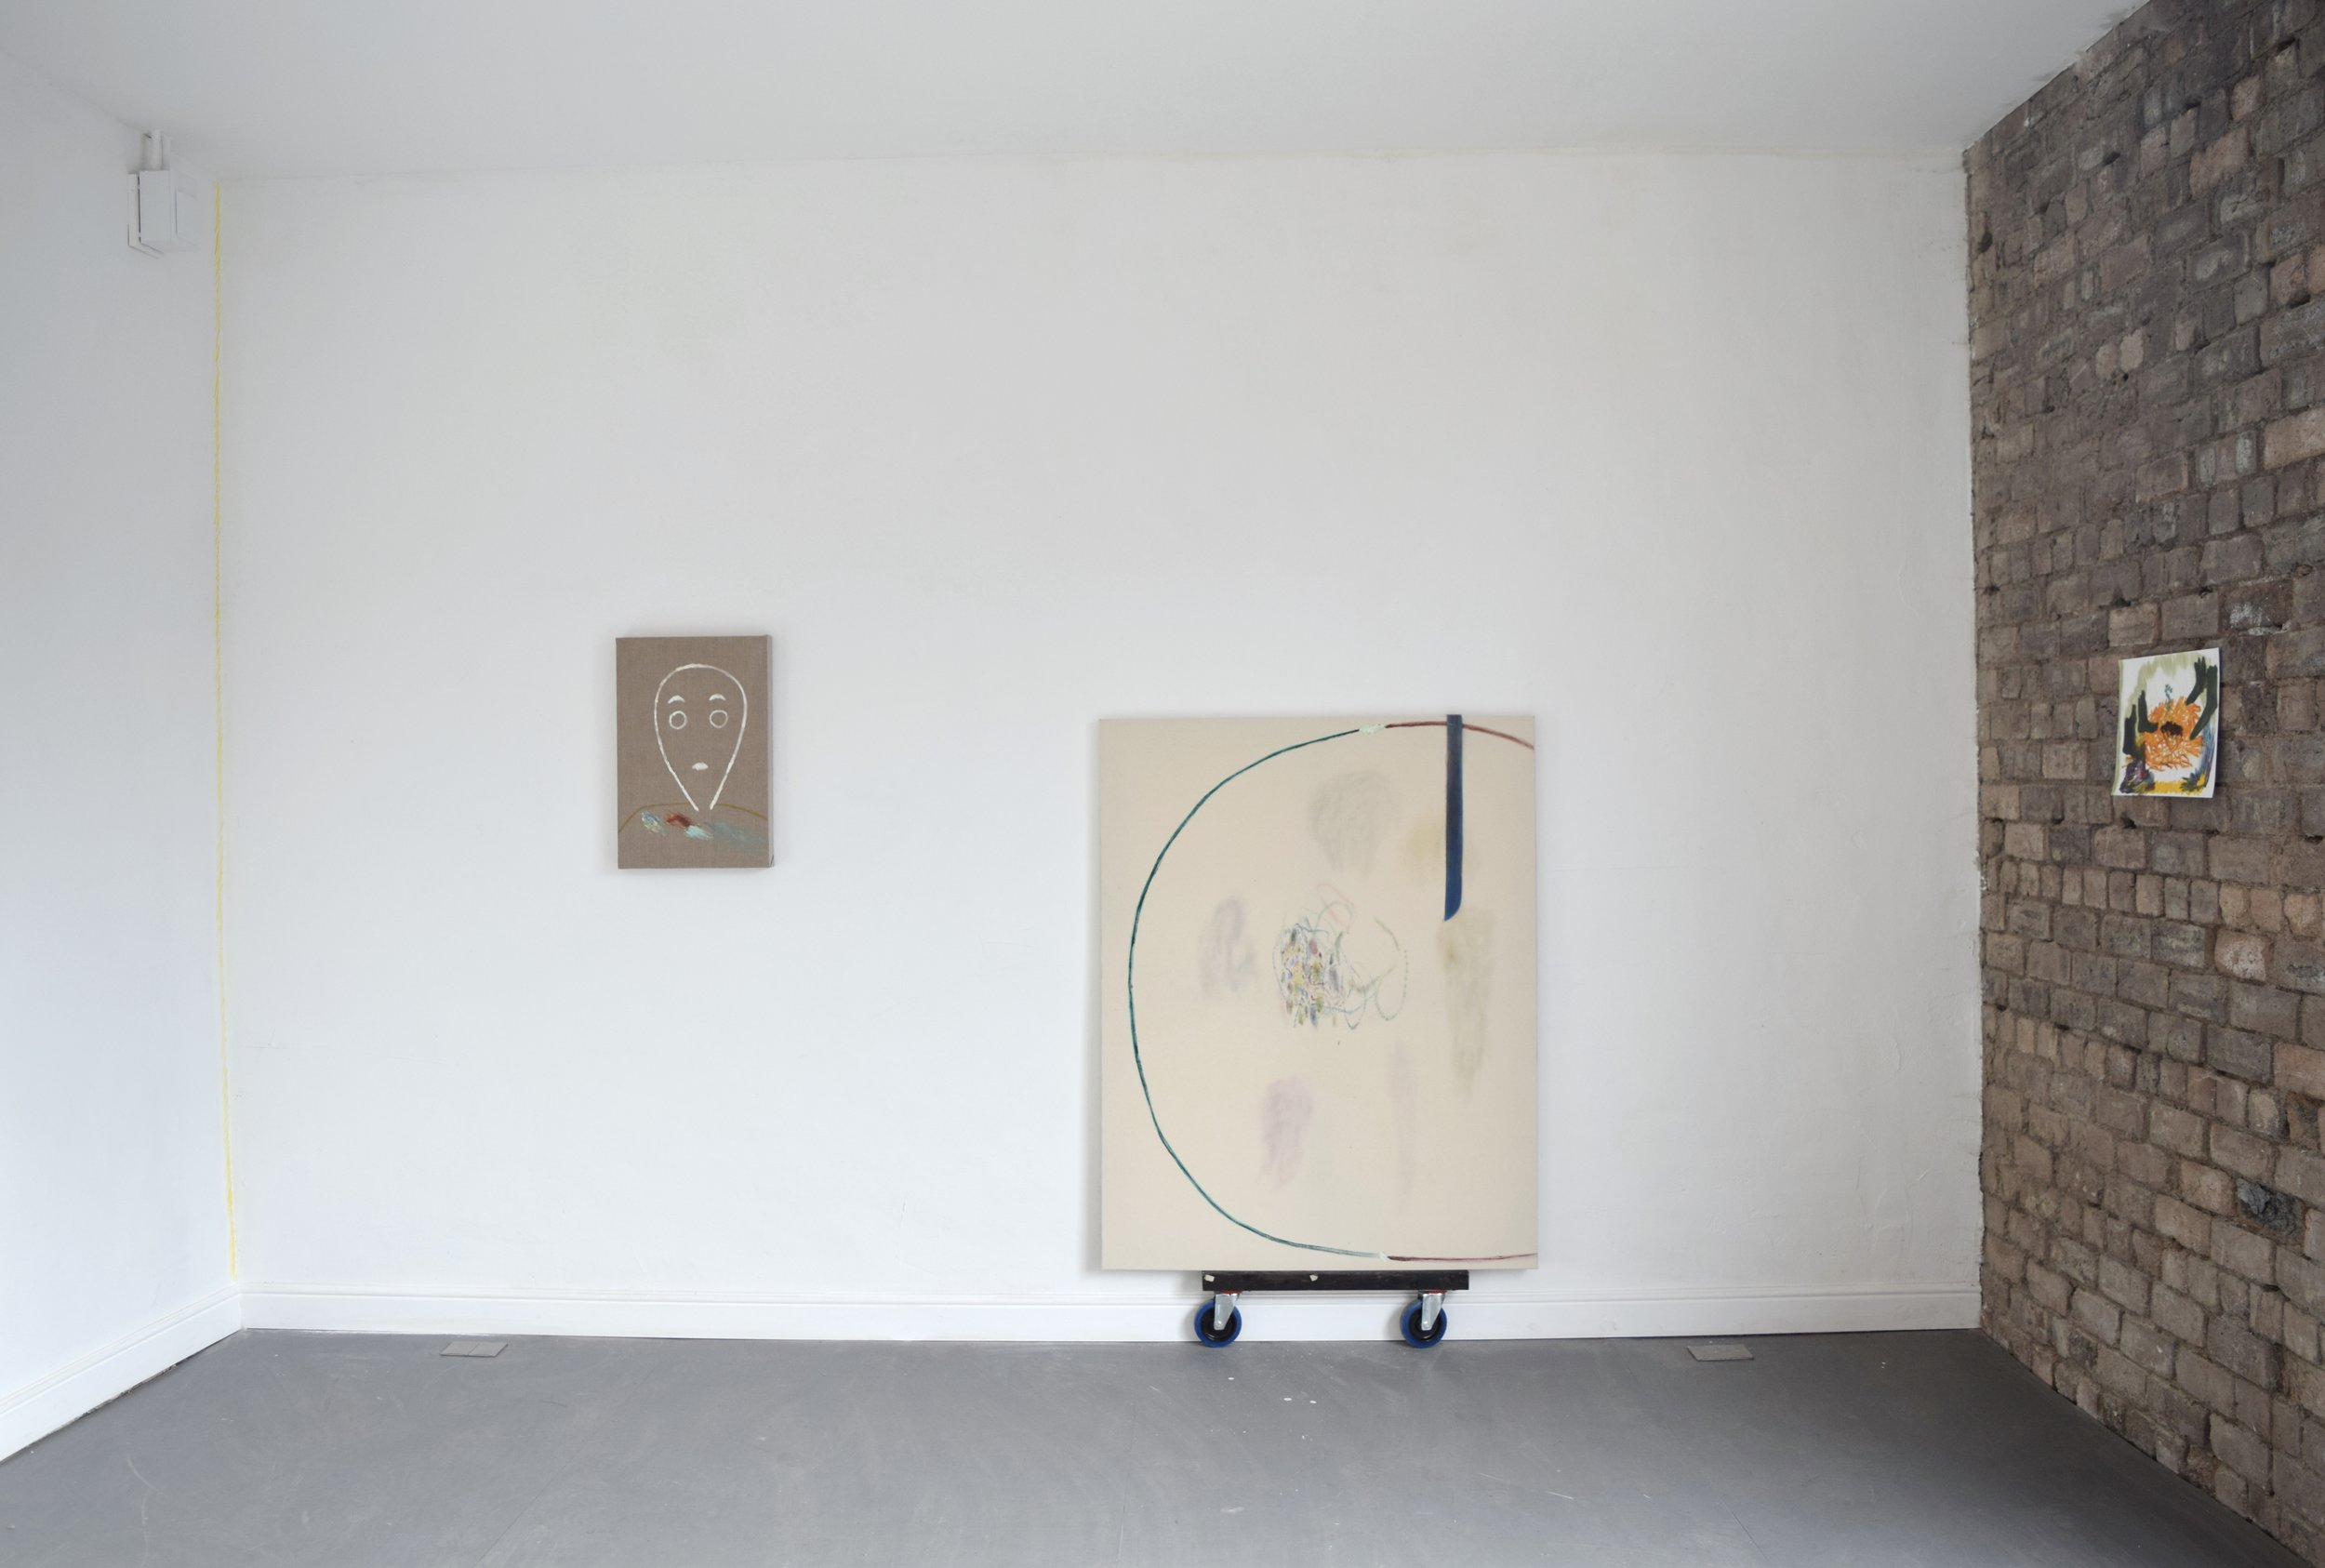 Installation Shot. Group show with Elinor Stanley and Jessica Whitely